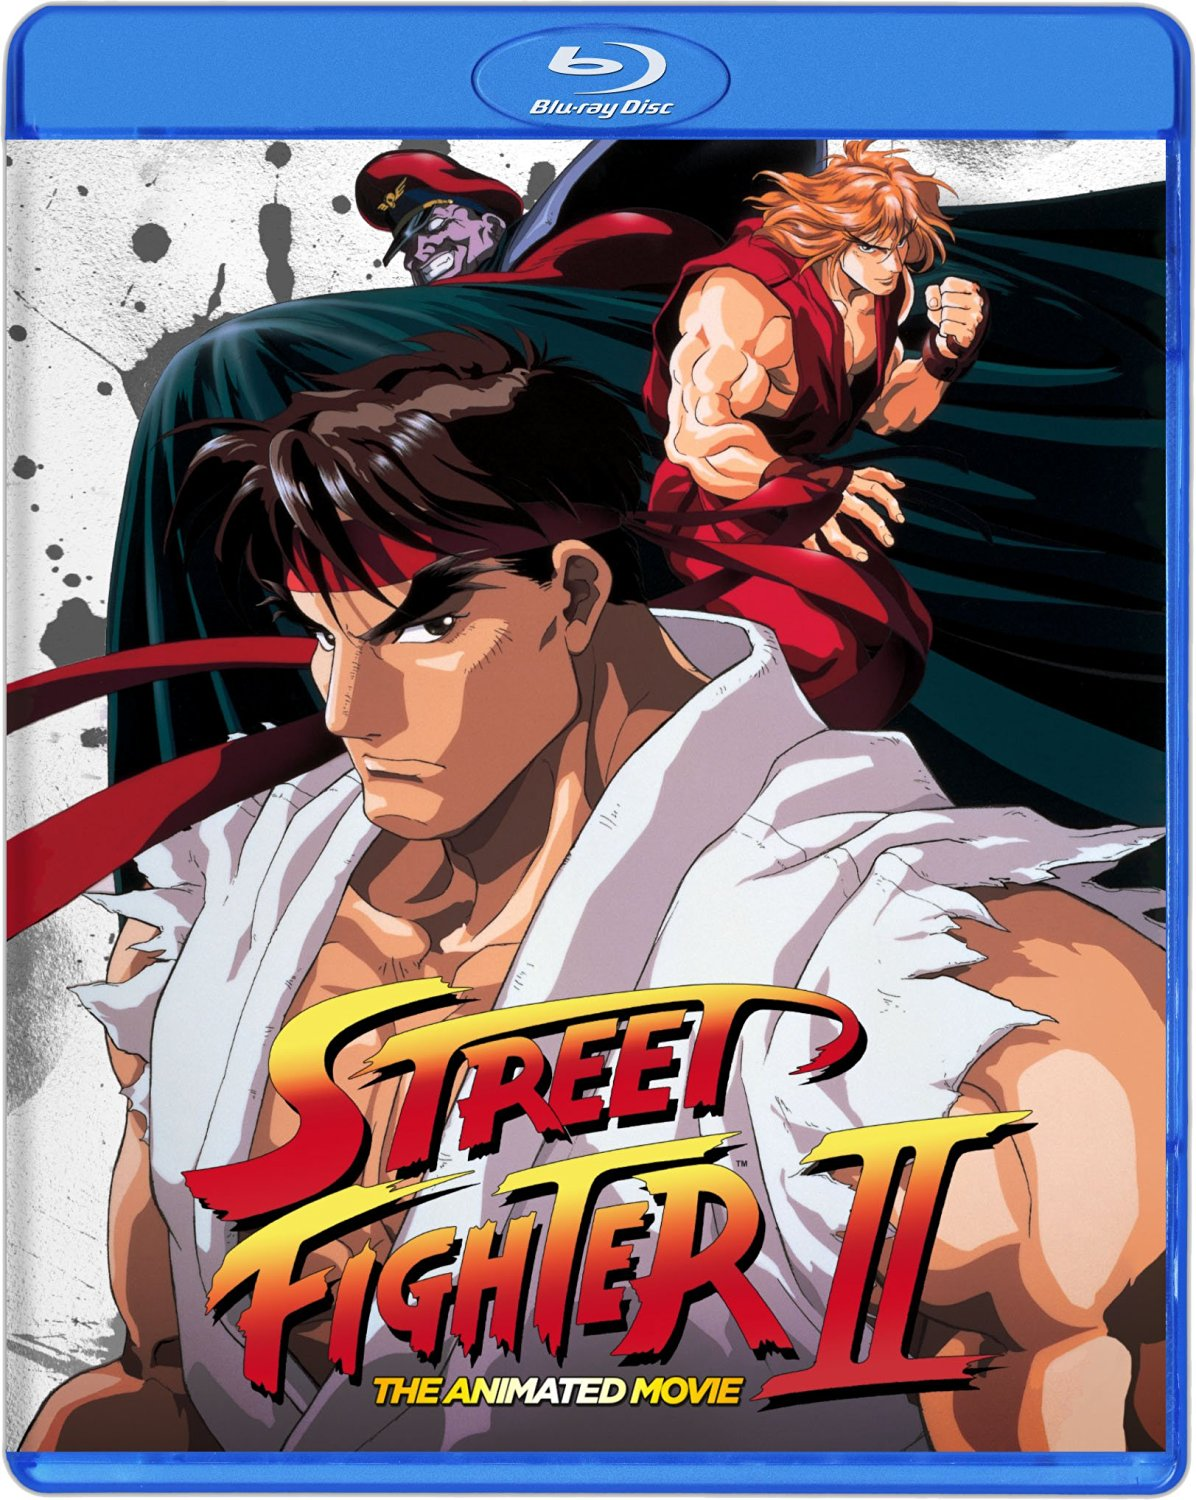 Video Game Critic S Street Fighter Blu Ray Reviews